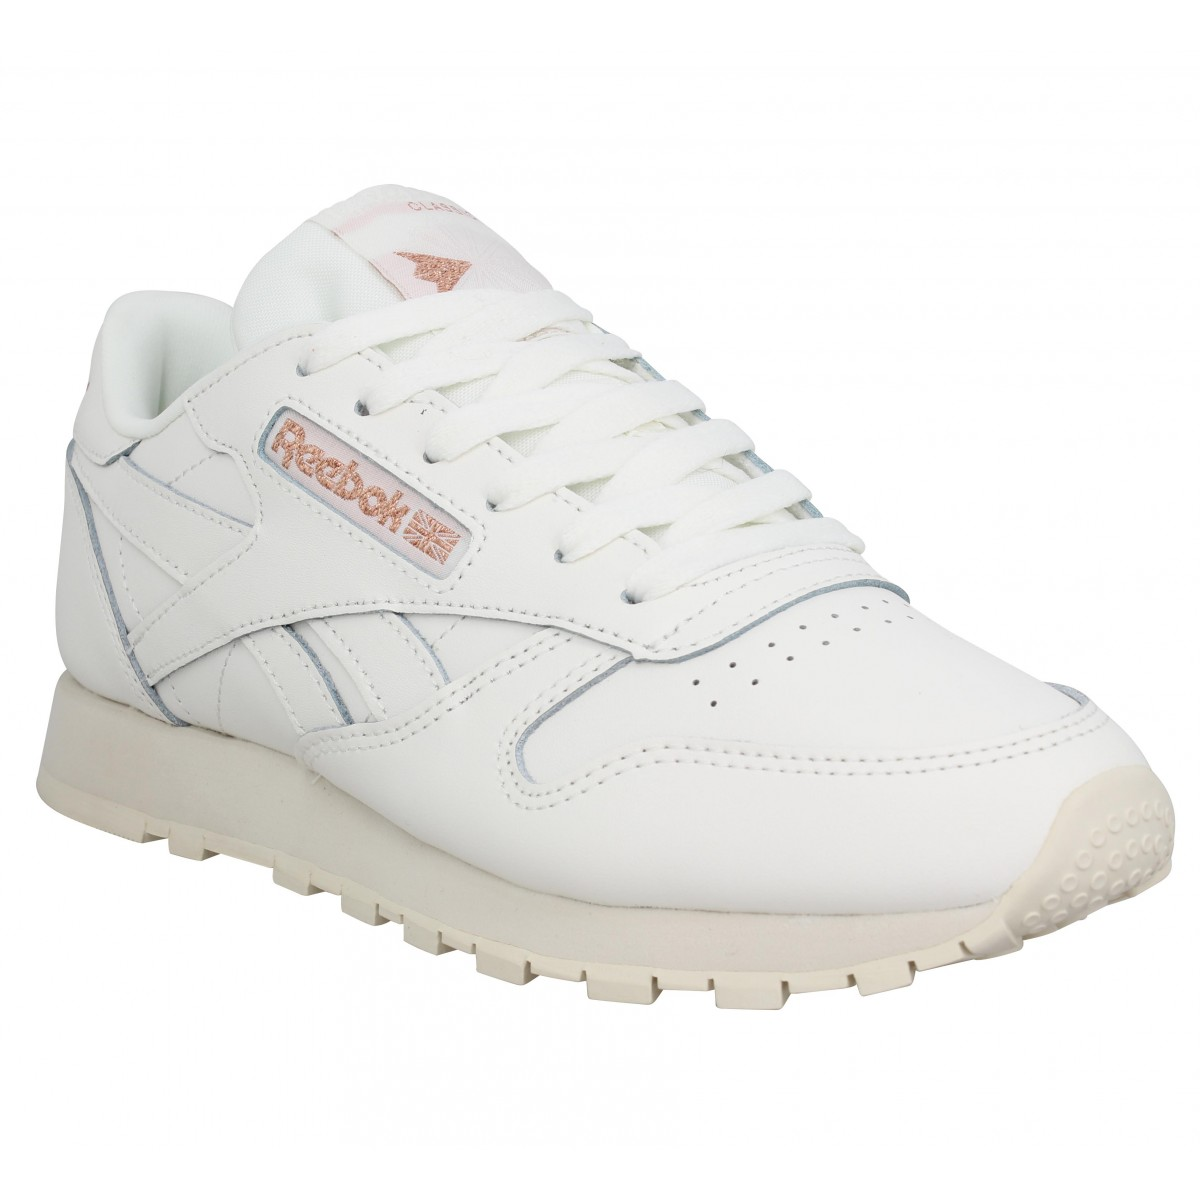 e83a1cf662b Baskets REEBOK Classic Leather cuir Femme Craie